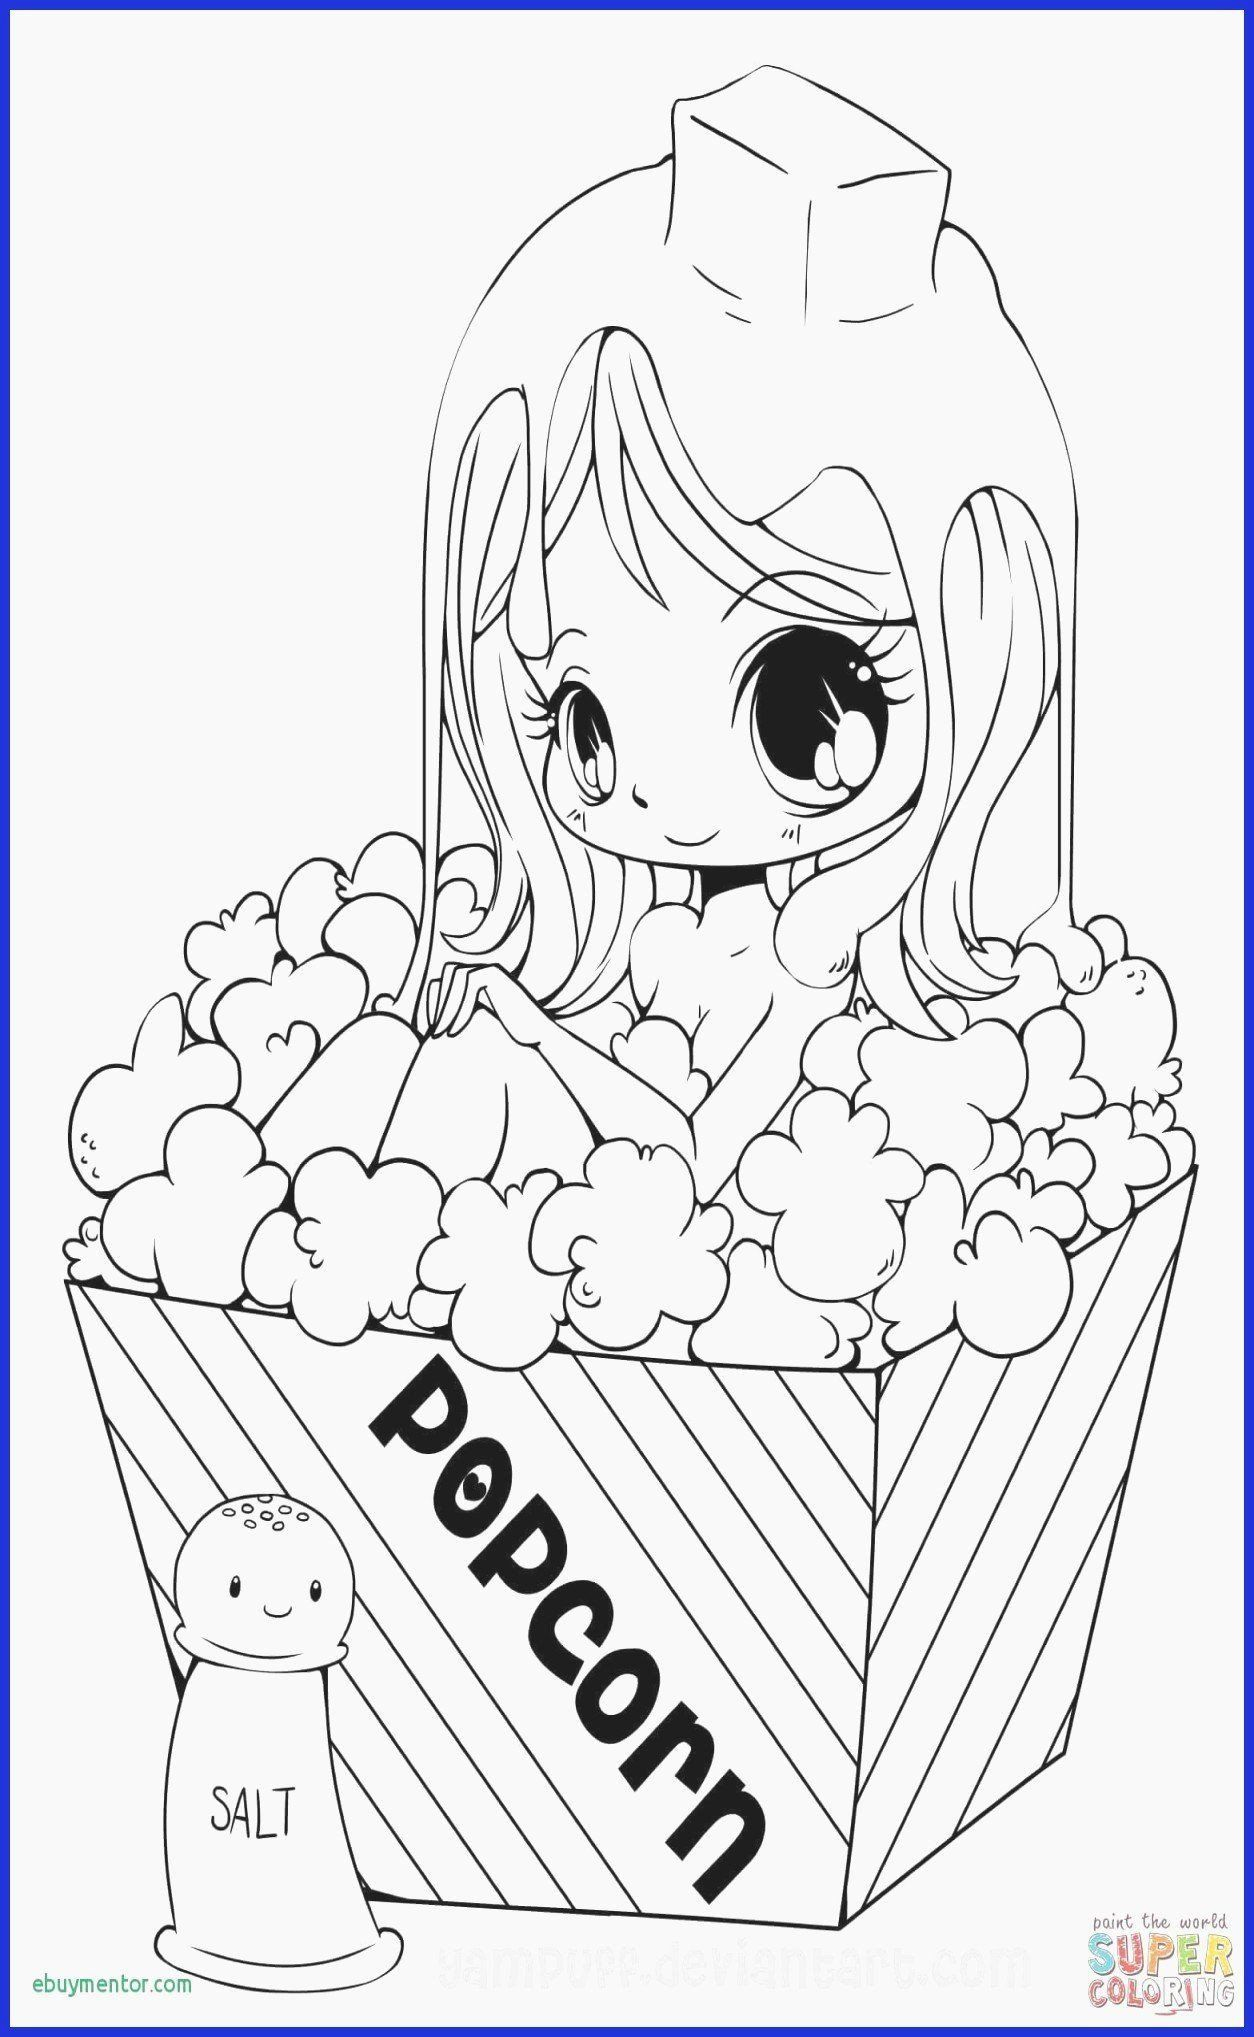 Coloring Games For Little Kids Coloring Books For Little Kids Inspirational Beautiful Anime In 2020 Chibi Coloring Pages Cartoon Coloring Pages Princess Coloring Pages